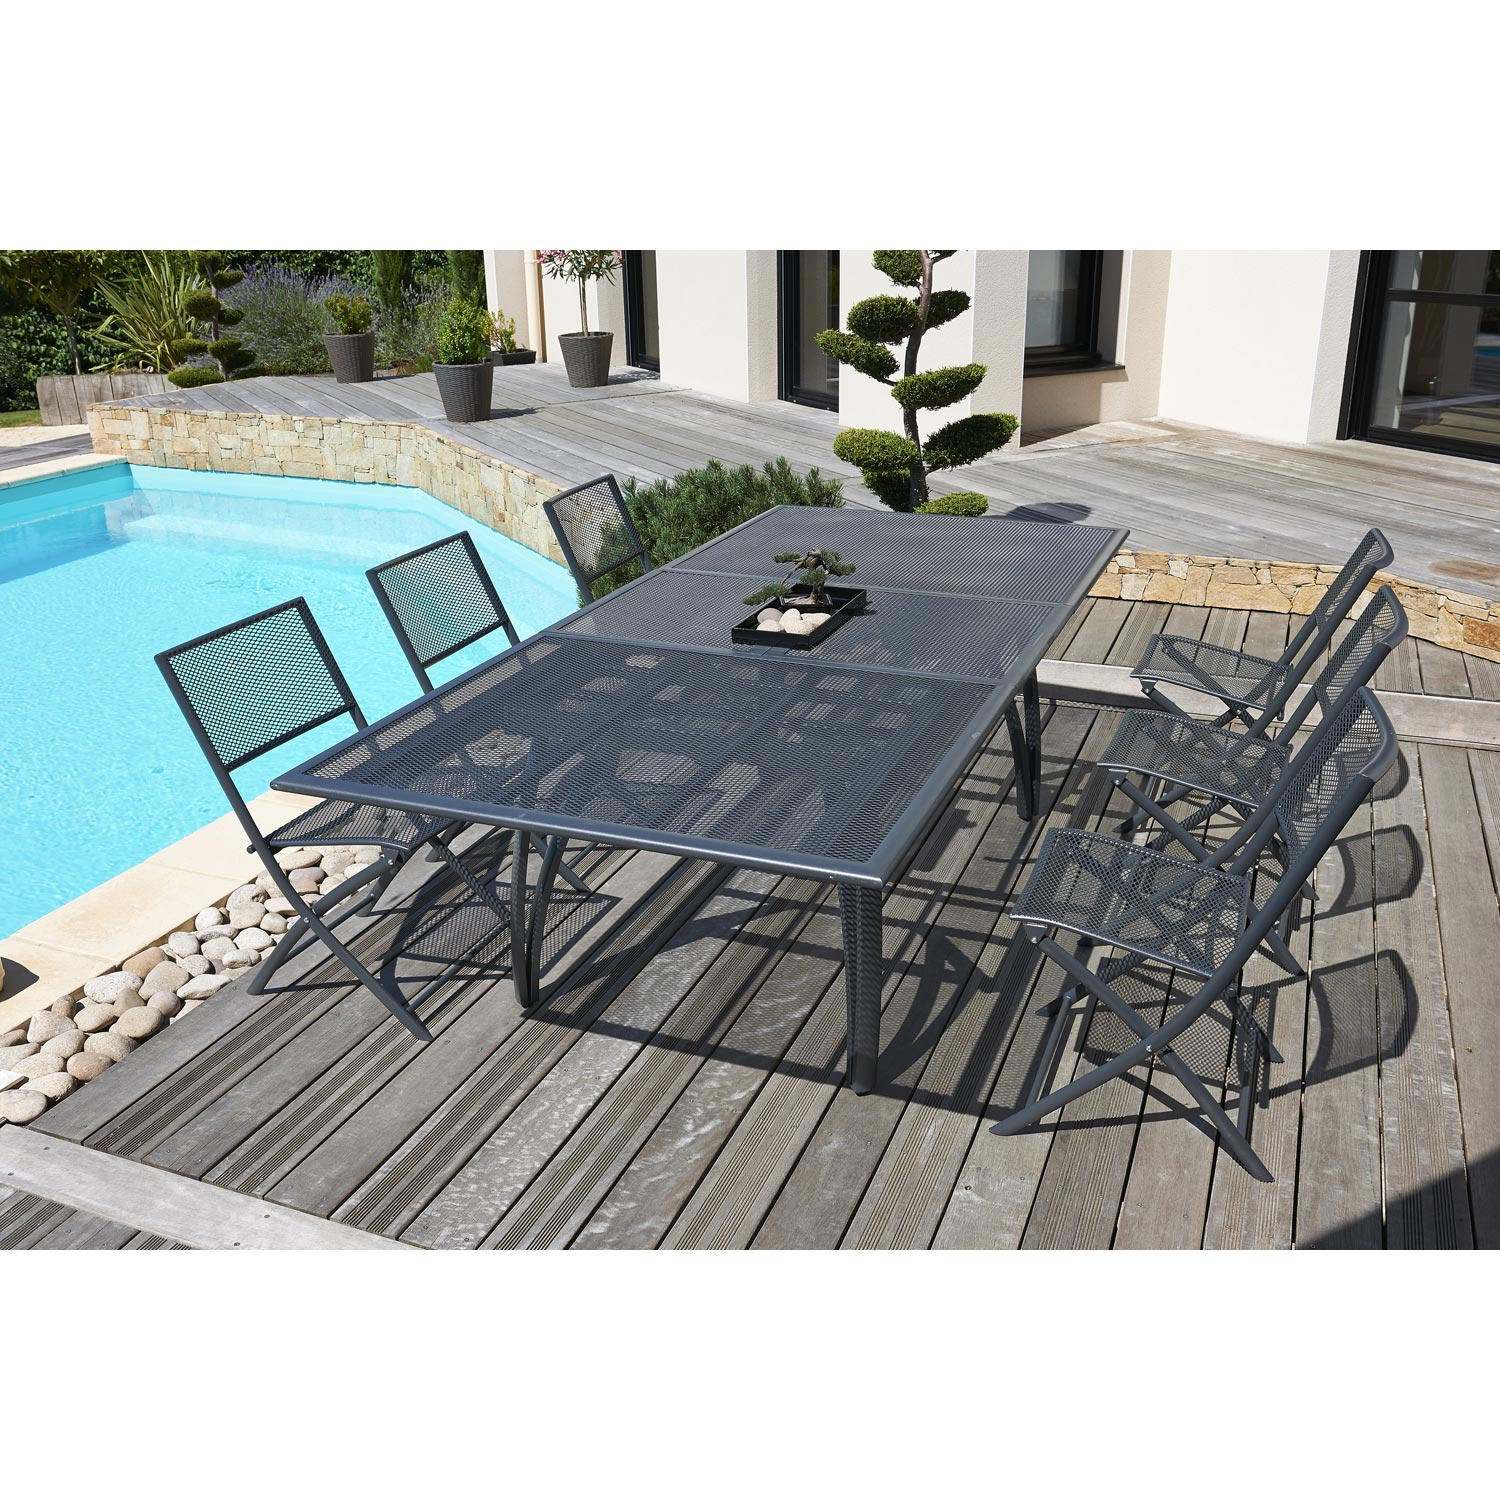 Salon de jardin gris anthracite 6 personnes leroy merlin for Salon de jardin tresse gris anthracite